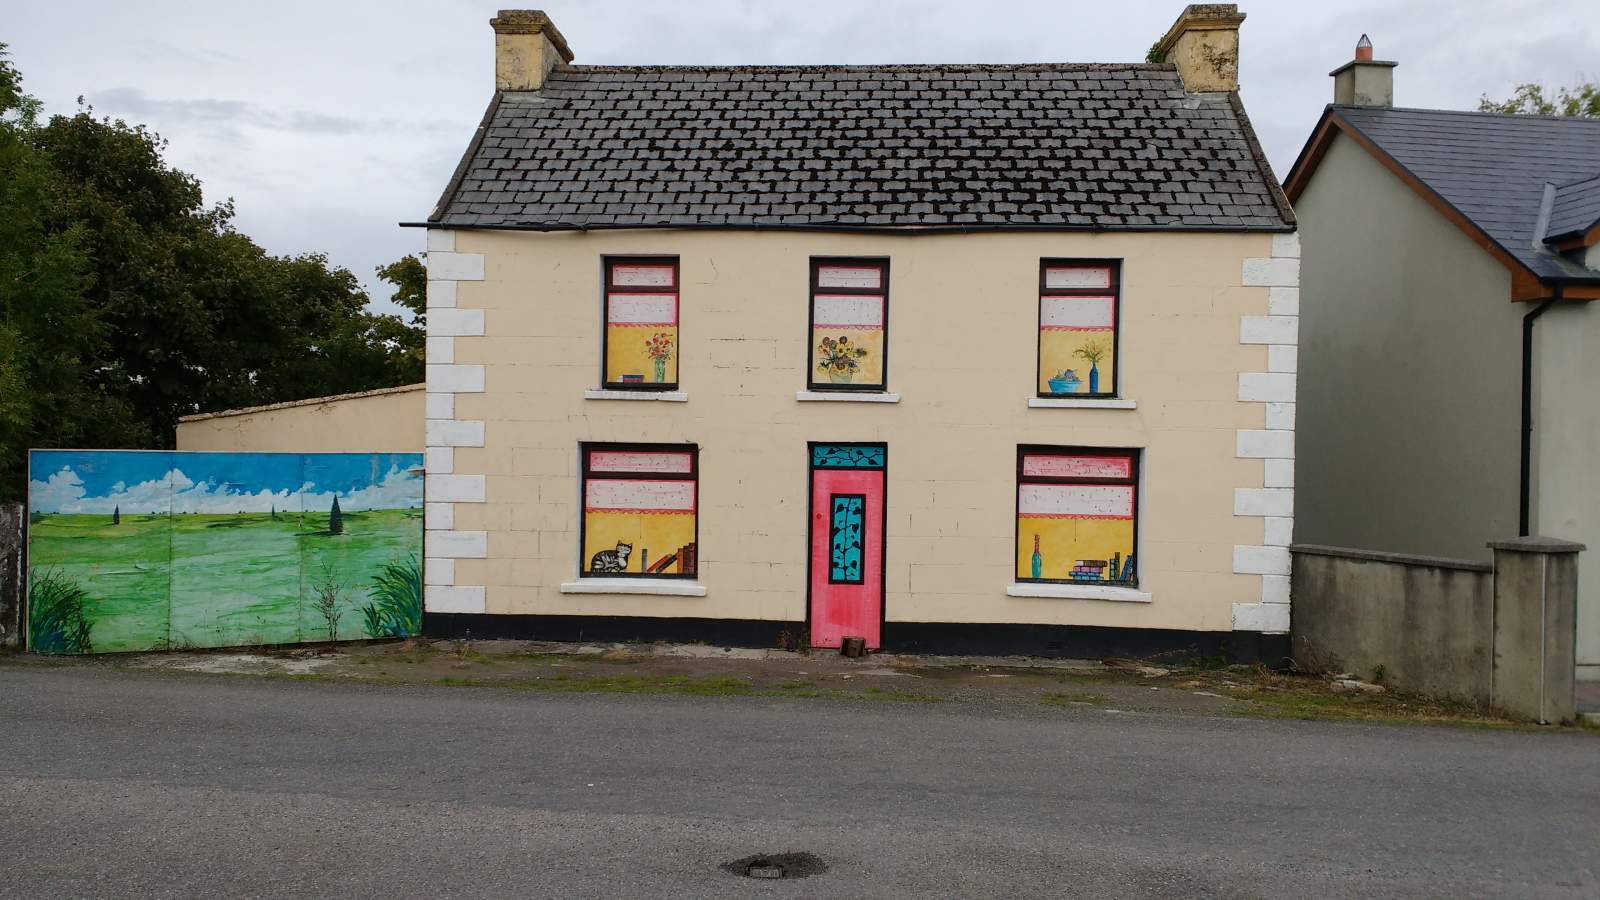 boarded up house, irish style